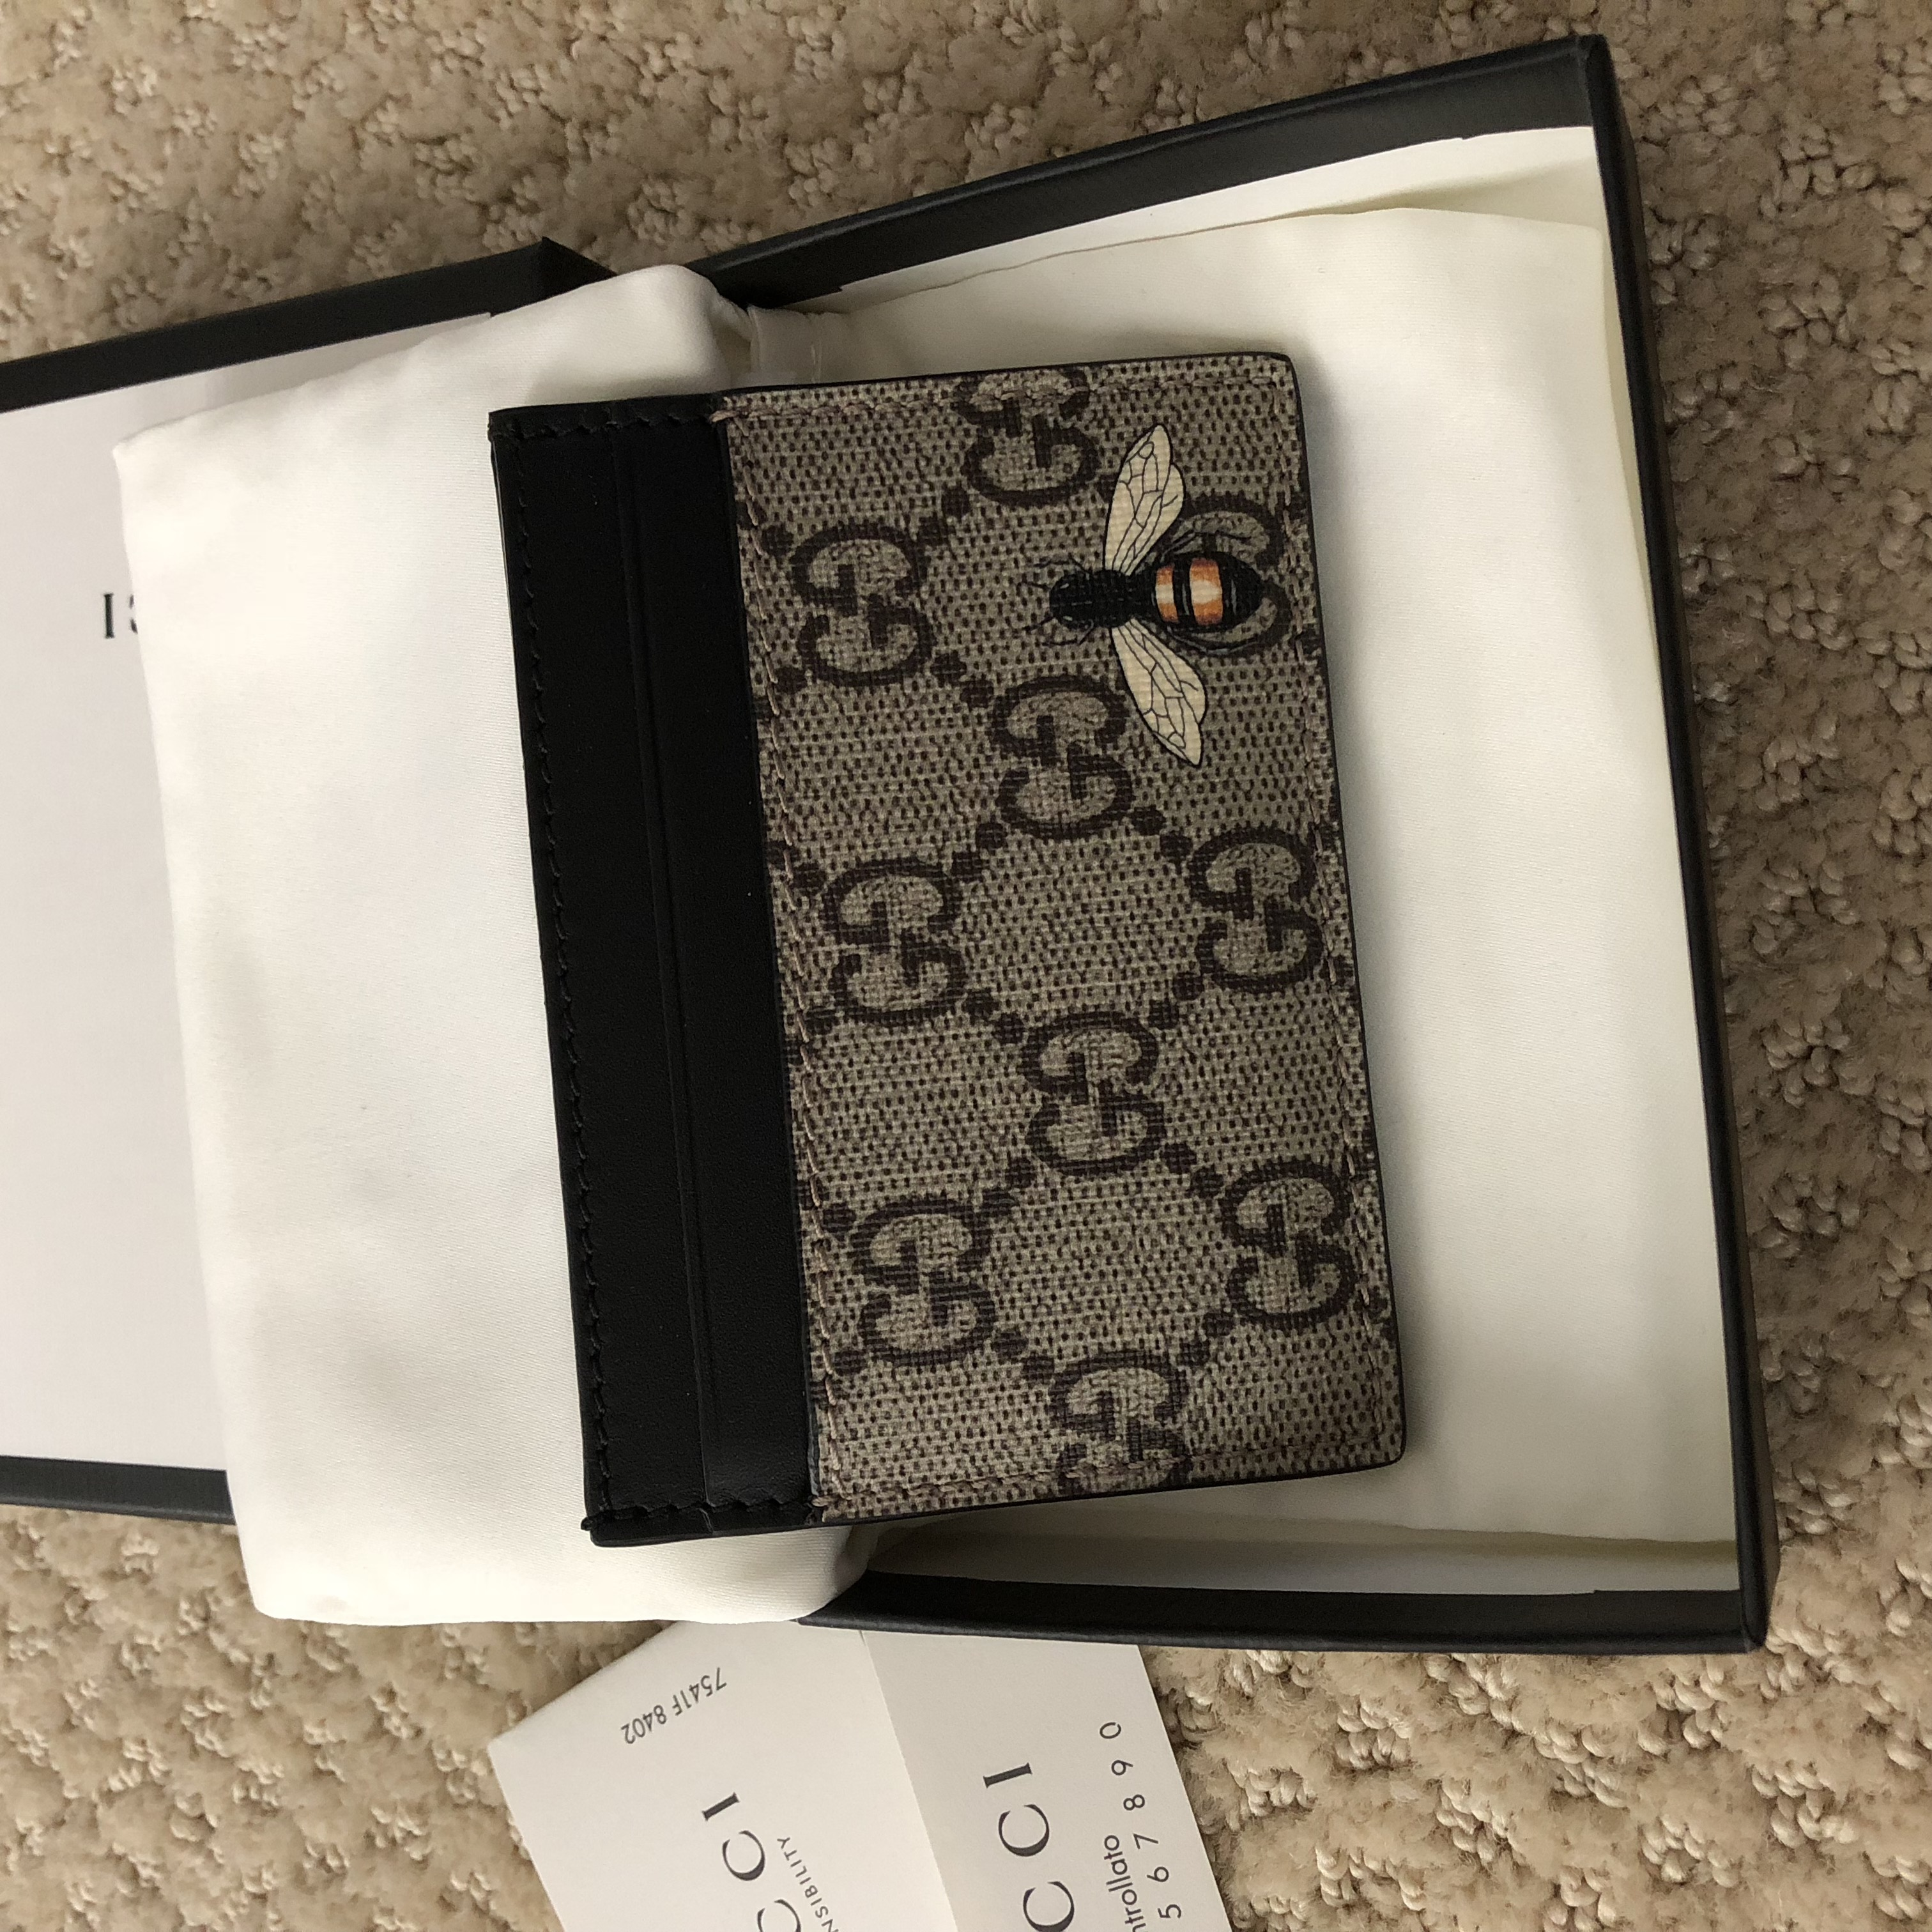 a2f56f56e80 Gucci Gucci Beige Black GG Supreme Bee Print Card Holder Wallet Size one  size - Wallets for Sale - Grailed